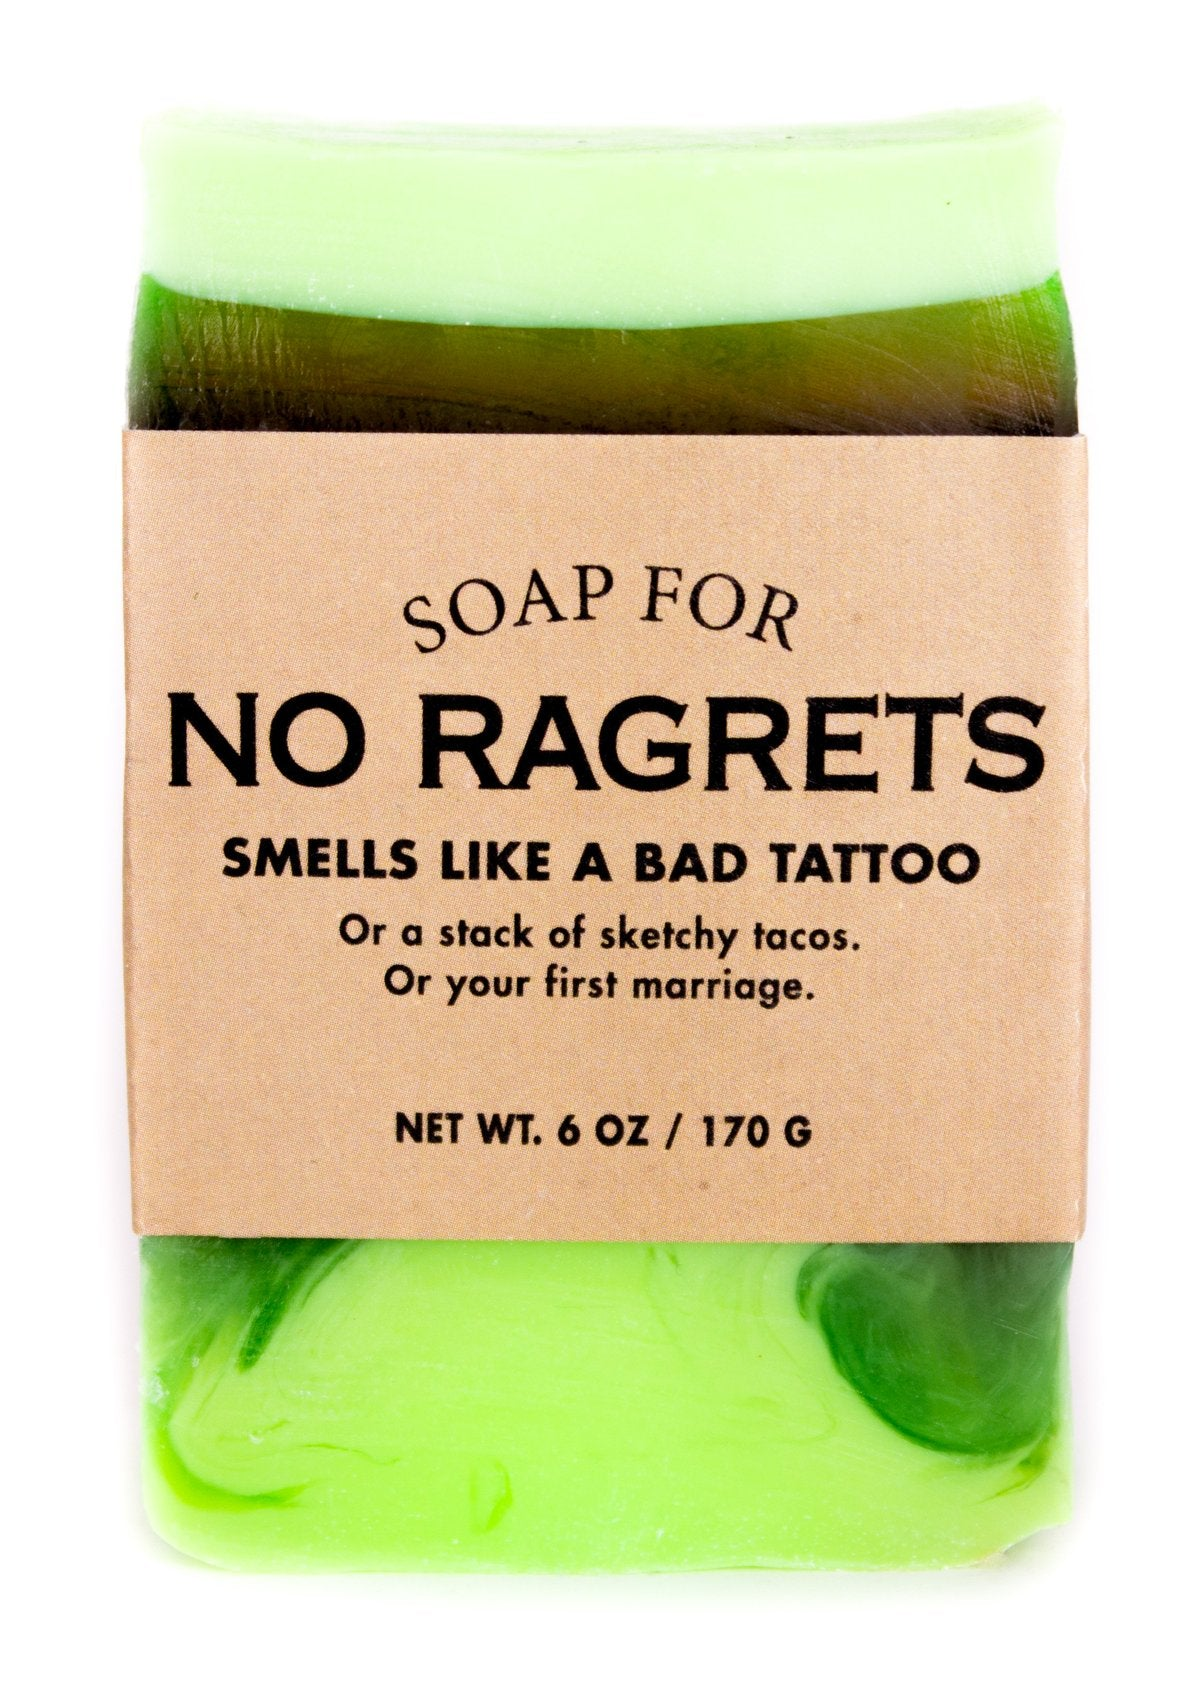 Soap for No Ragrets - Heart of the Home PA